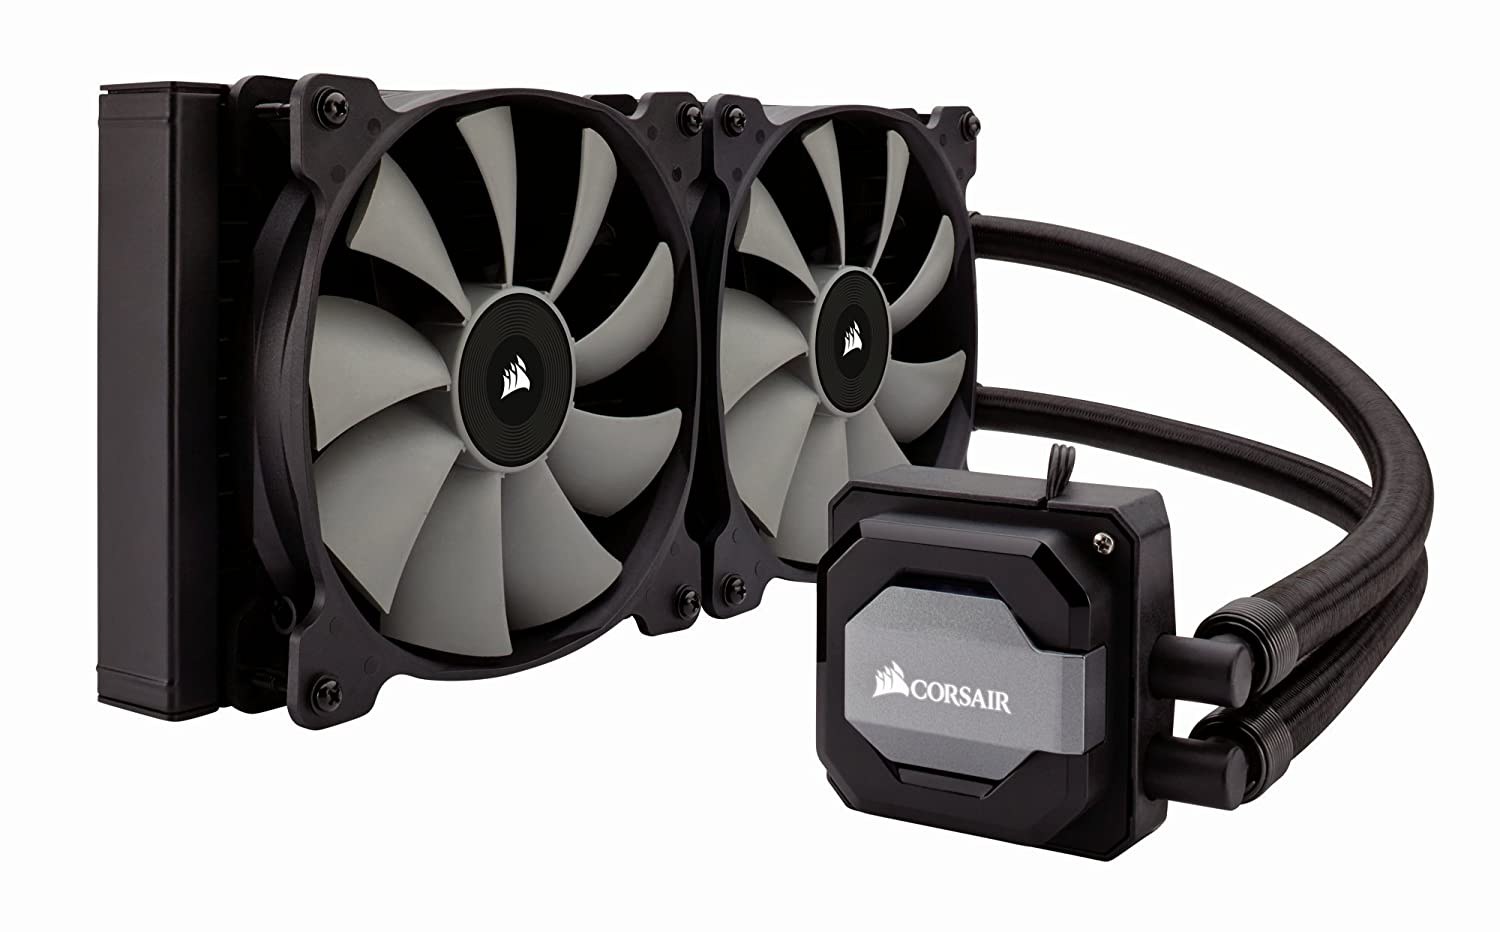 Corsair Hydro Series H110i Extreme Performance Water / Liquid CPU Cooler Cooling 280mm CW-9060026-WW